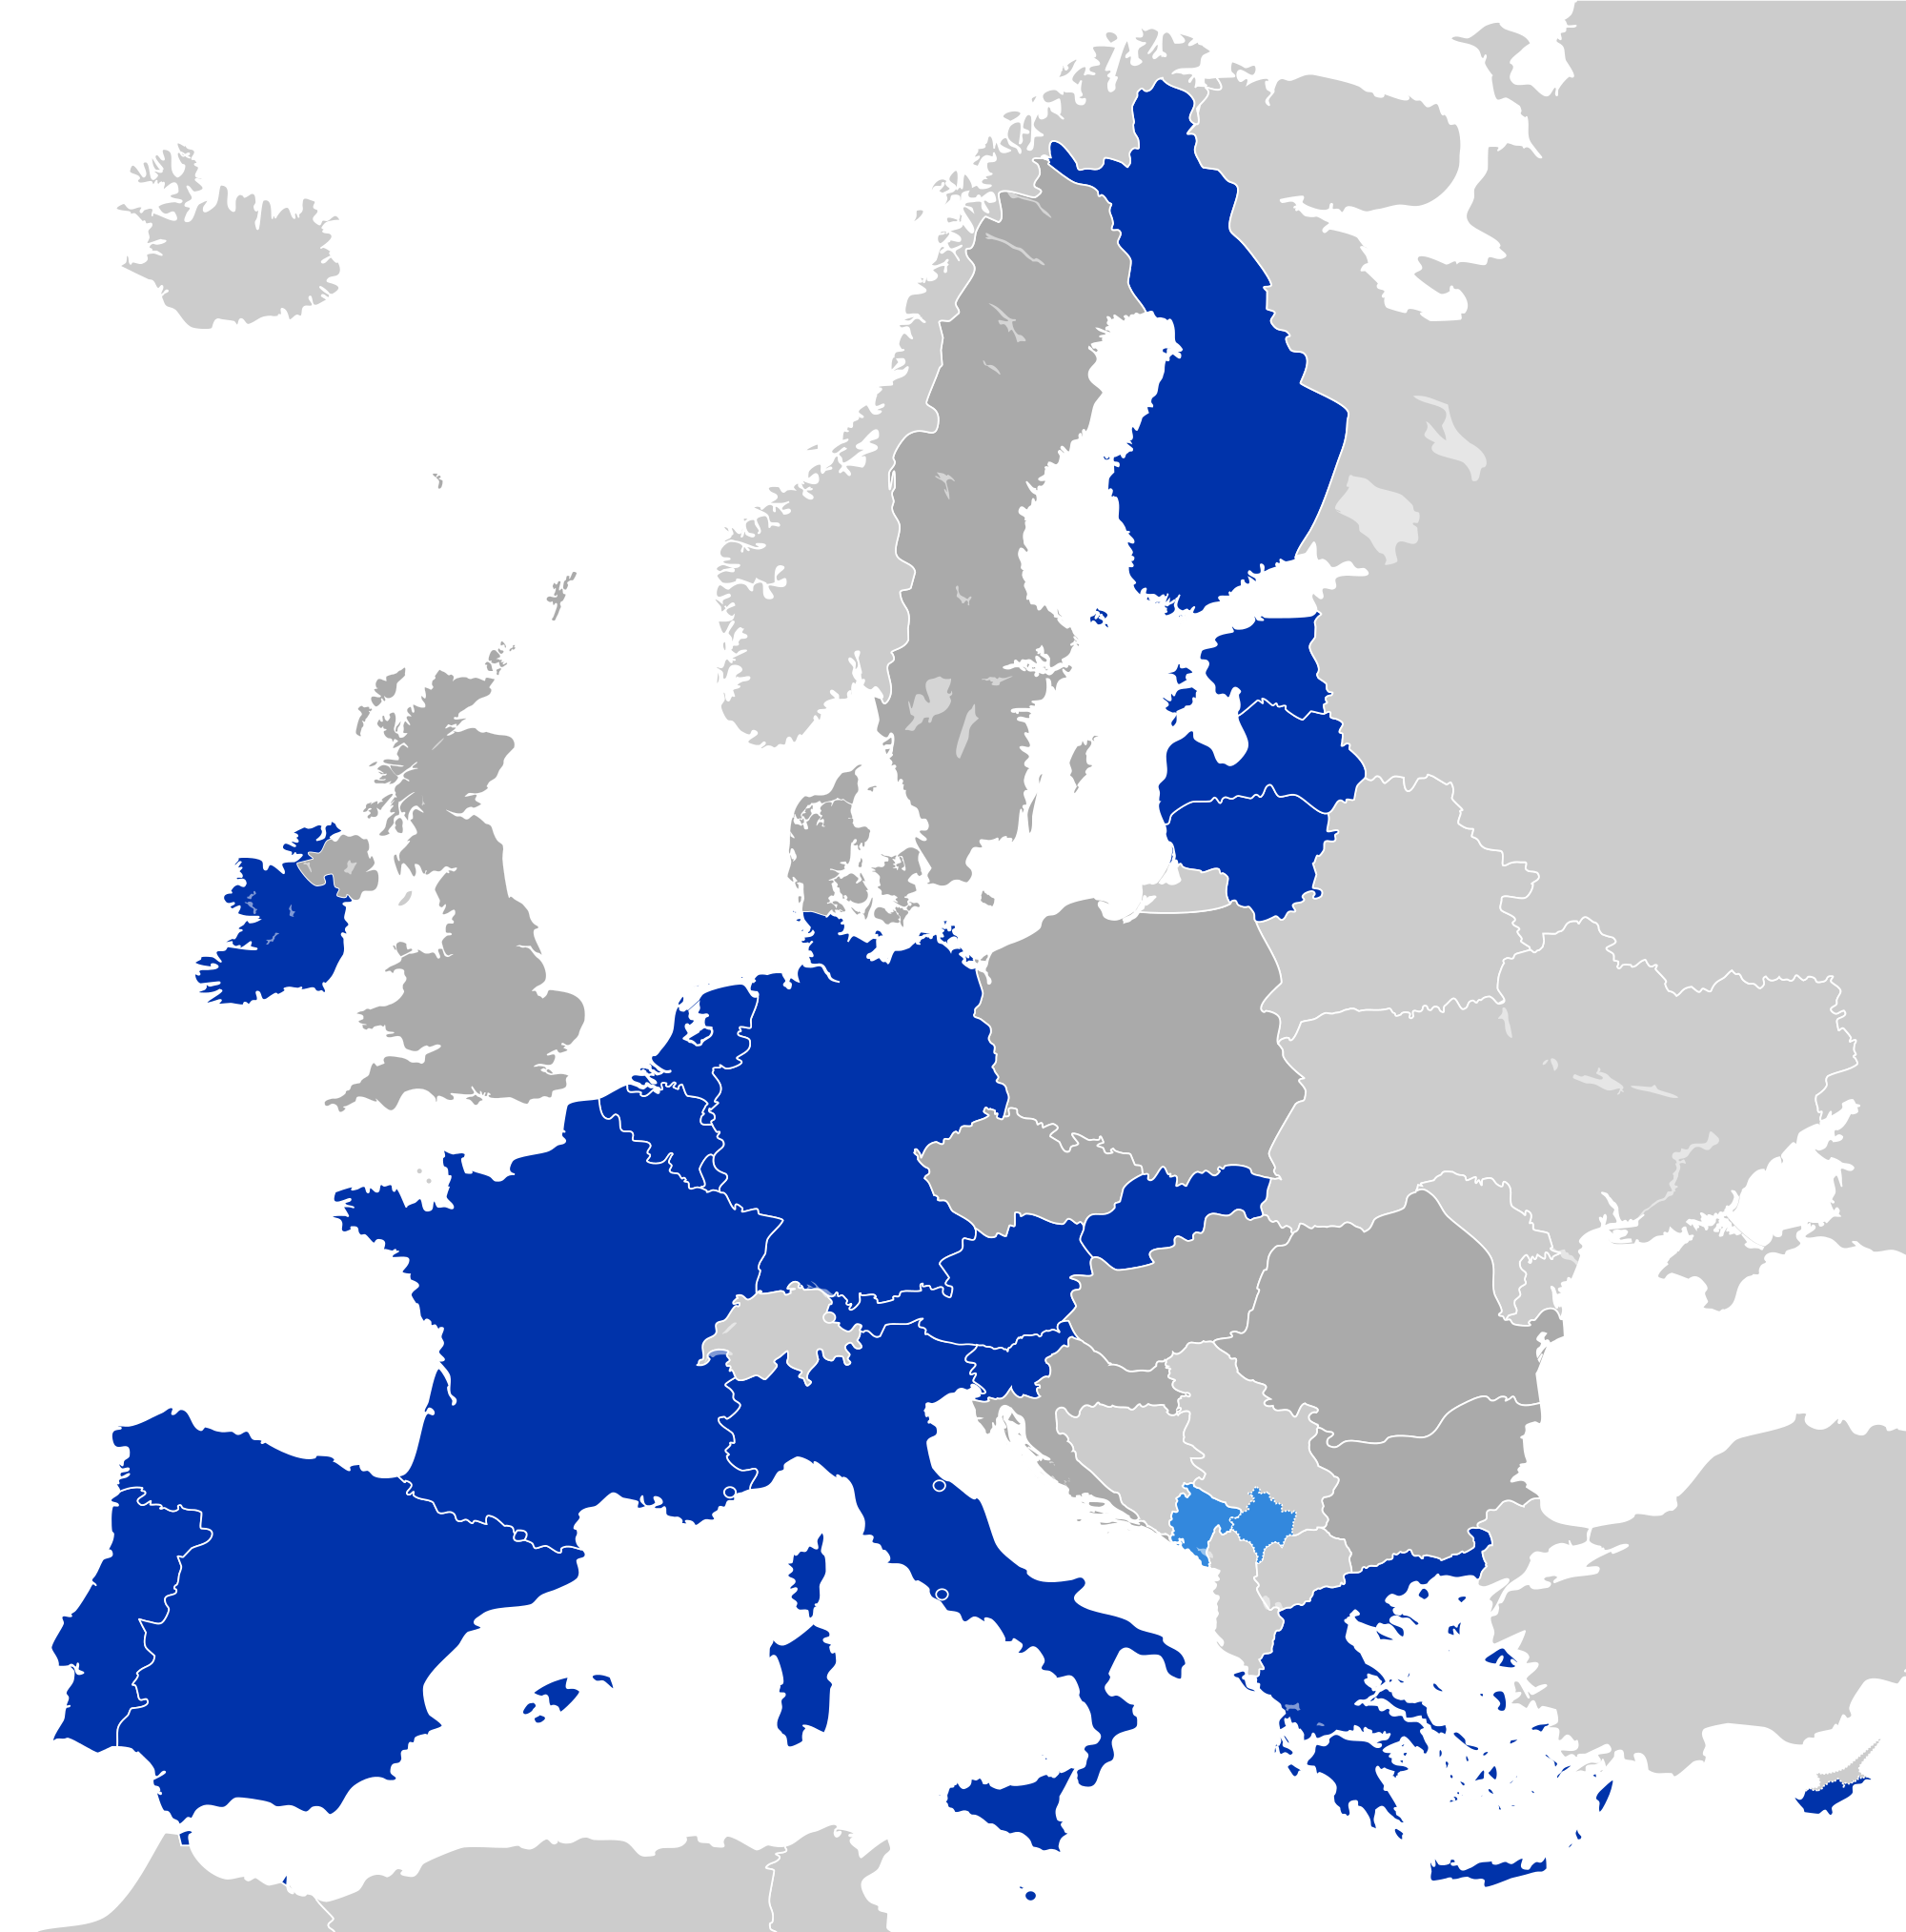 Euro zone map